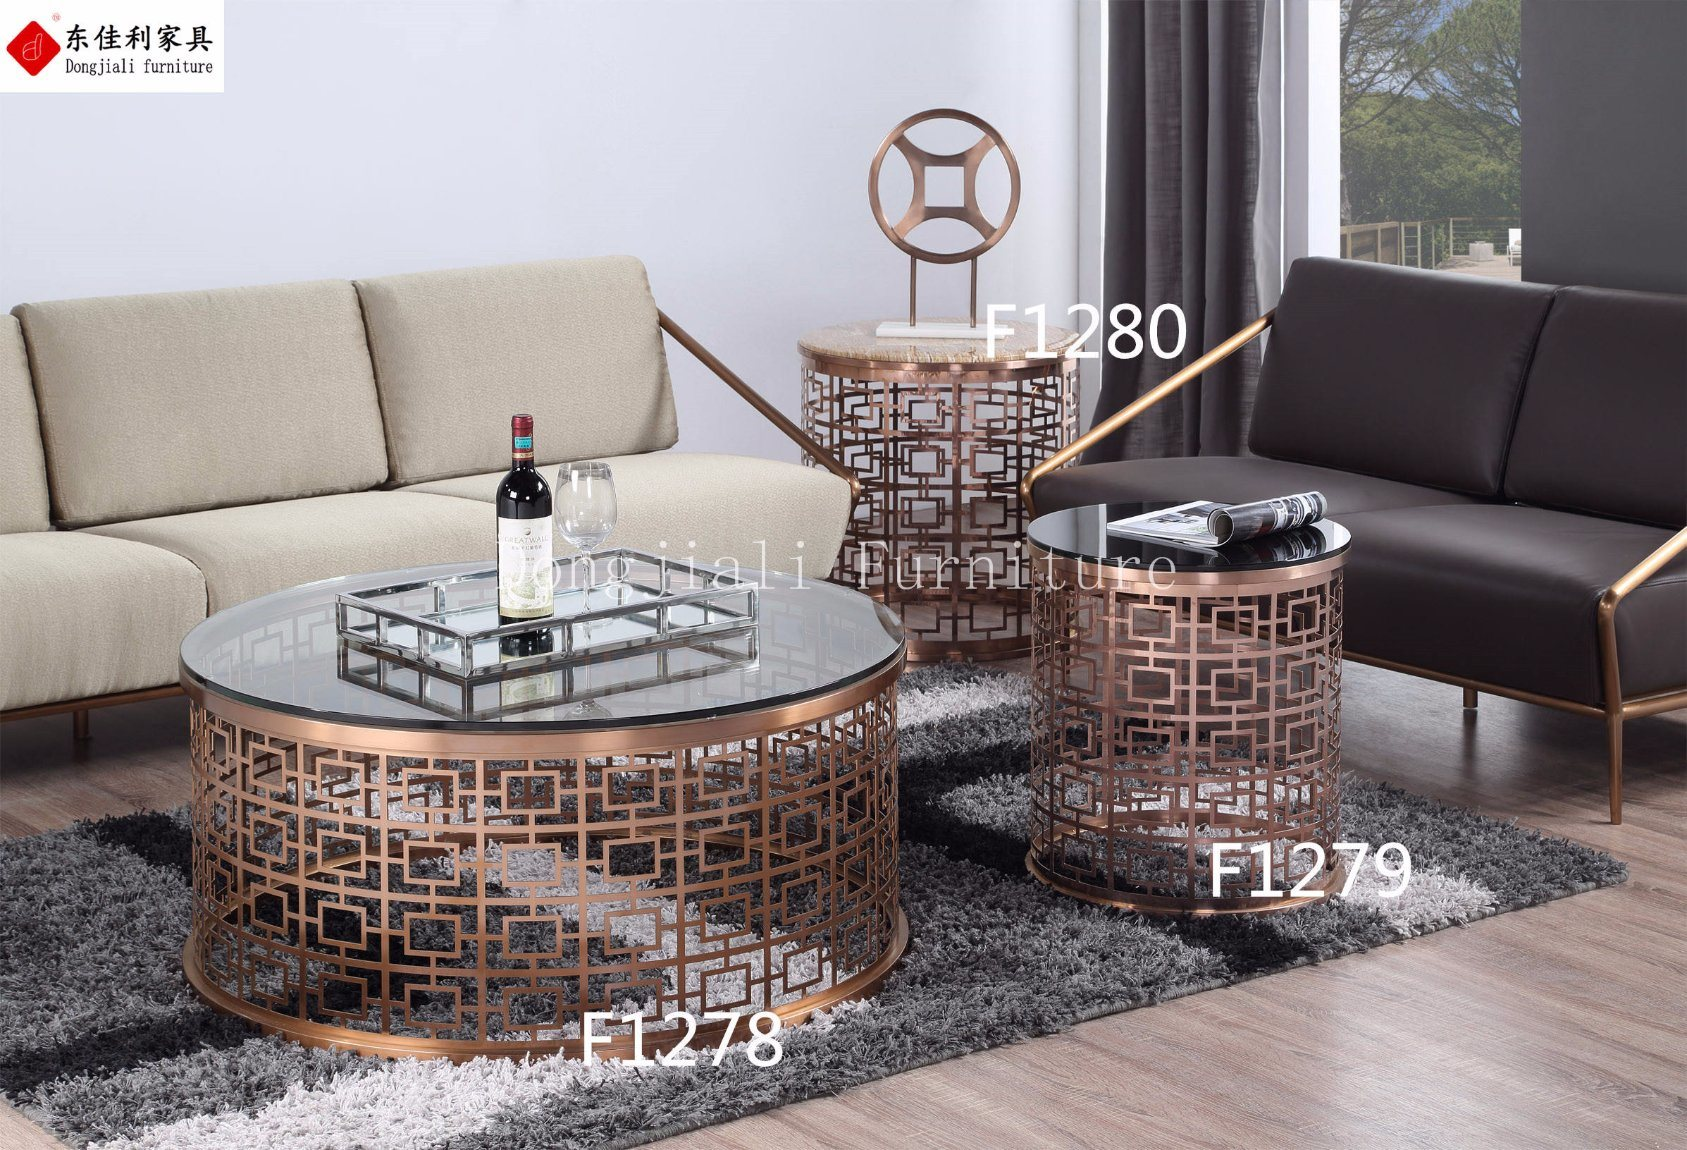 - China Round Glass Coffee Table Set With Stainless Steel Frame